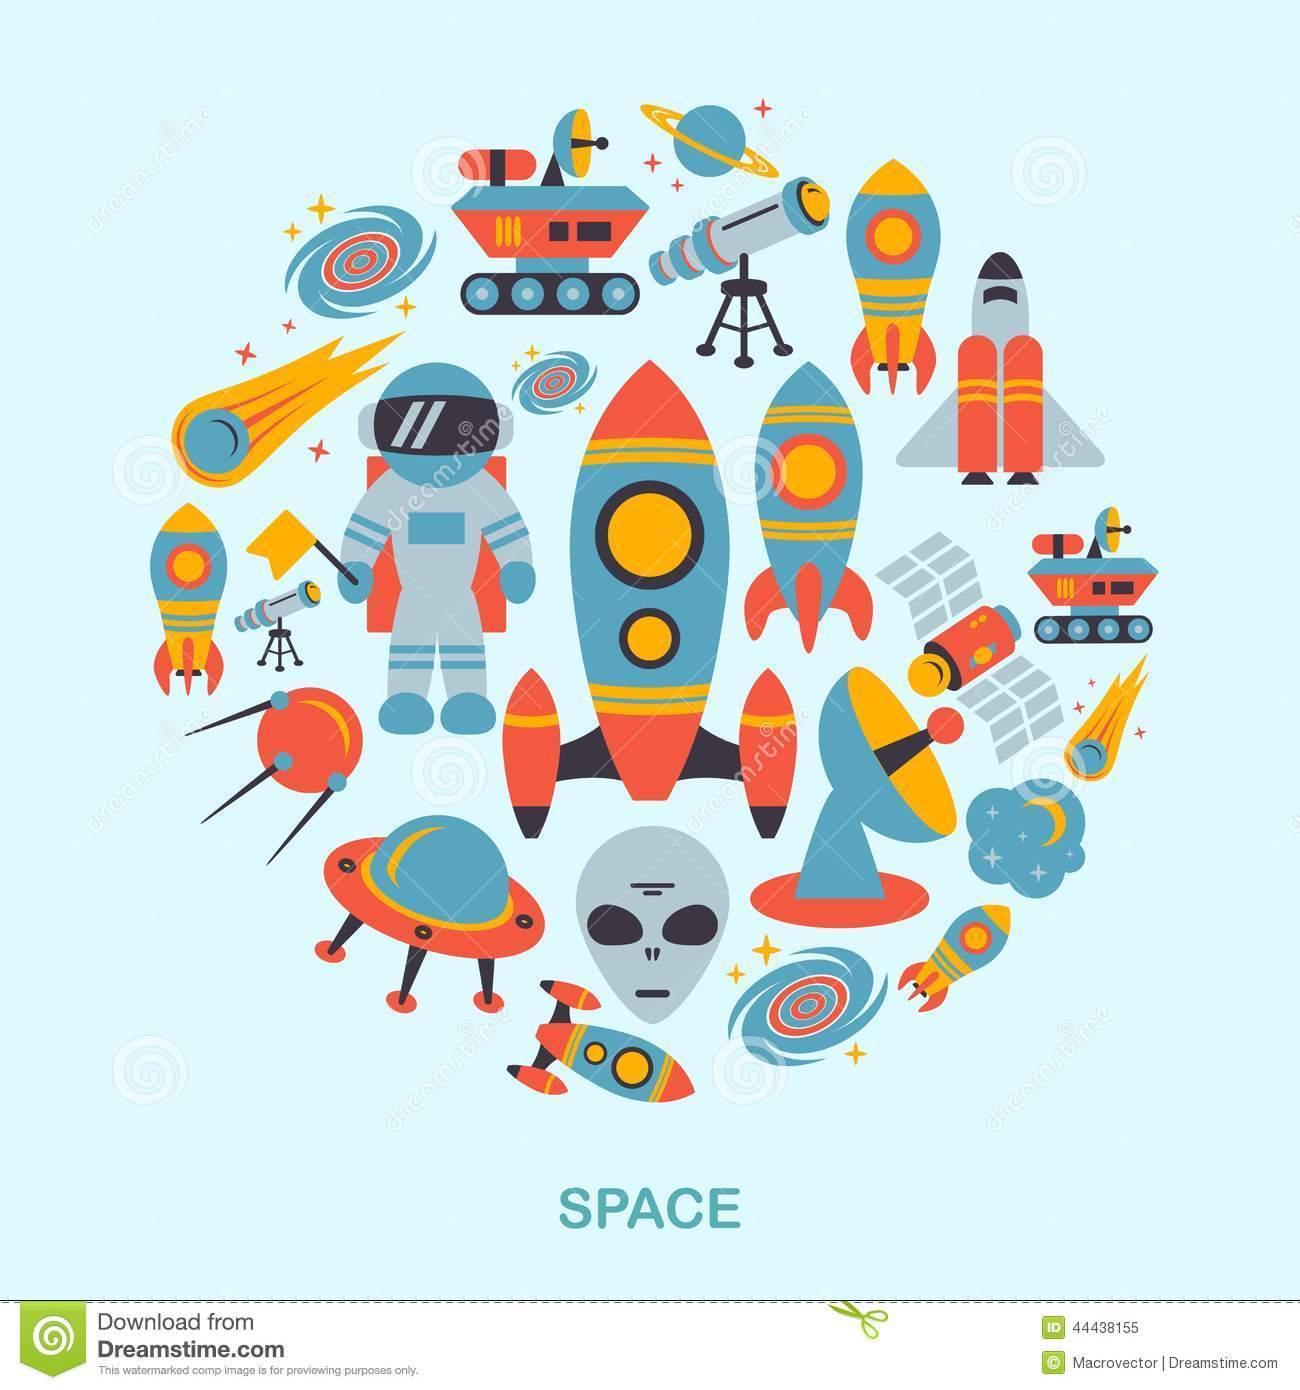 Space Management Icon : Space icons flat stock vector image